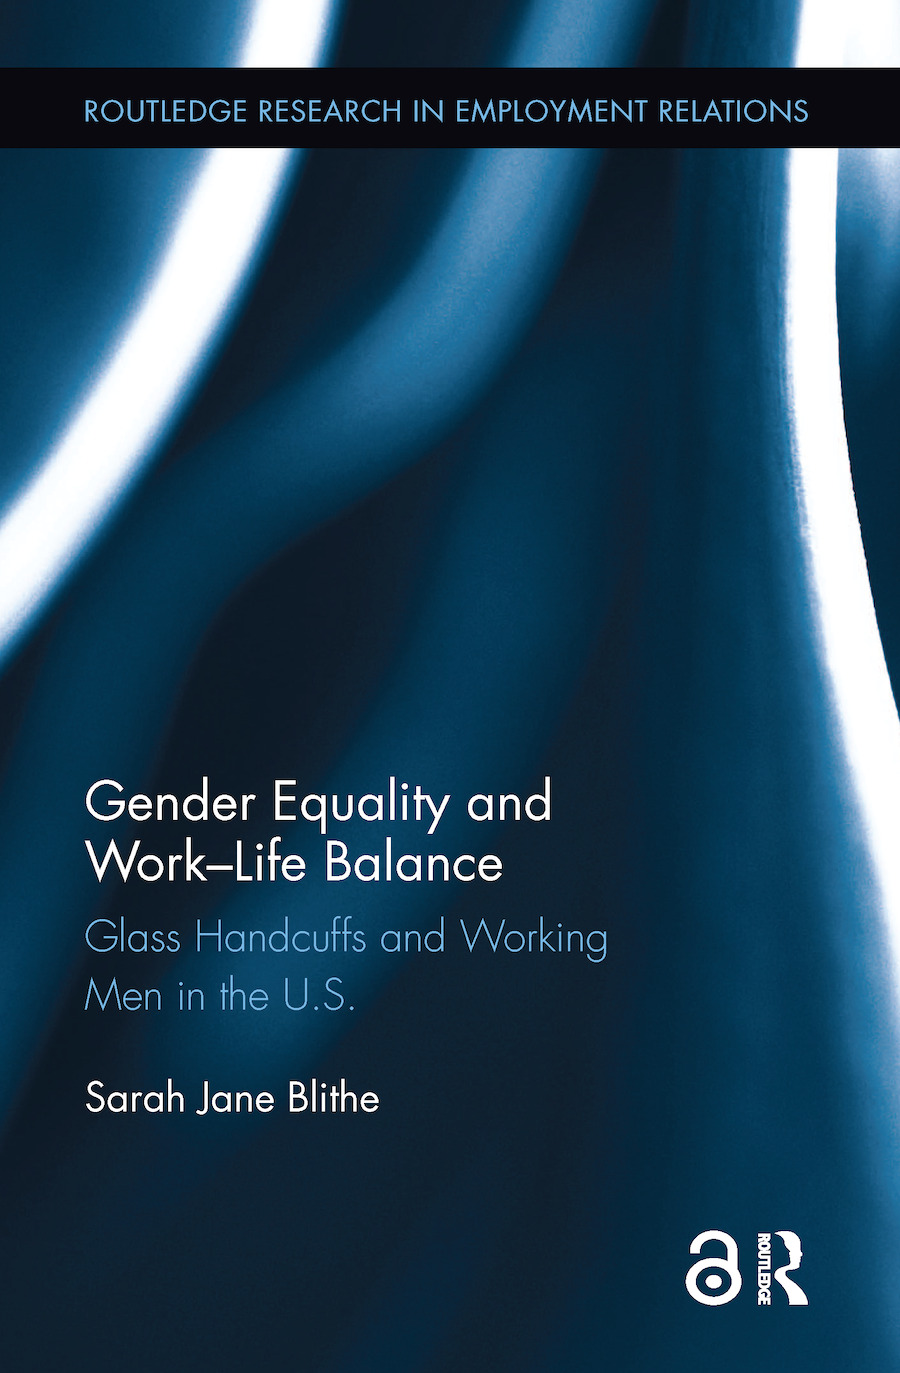 Gender Equality and Work-Life Balance: Glass Handcuffs and Working Men in the U.S. book cover